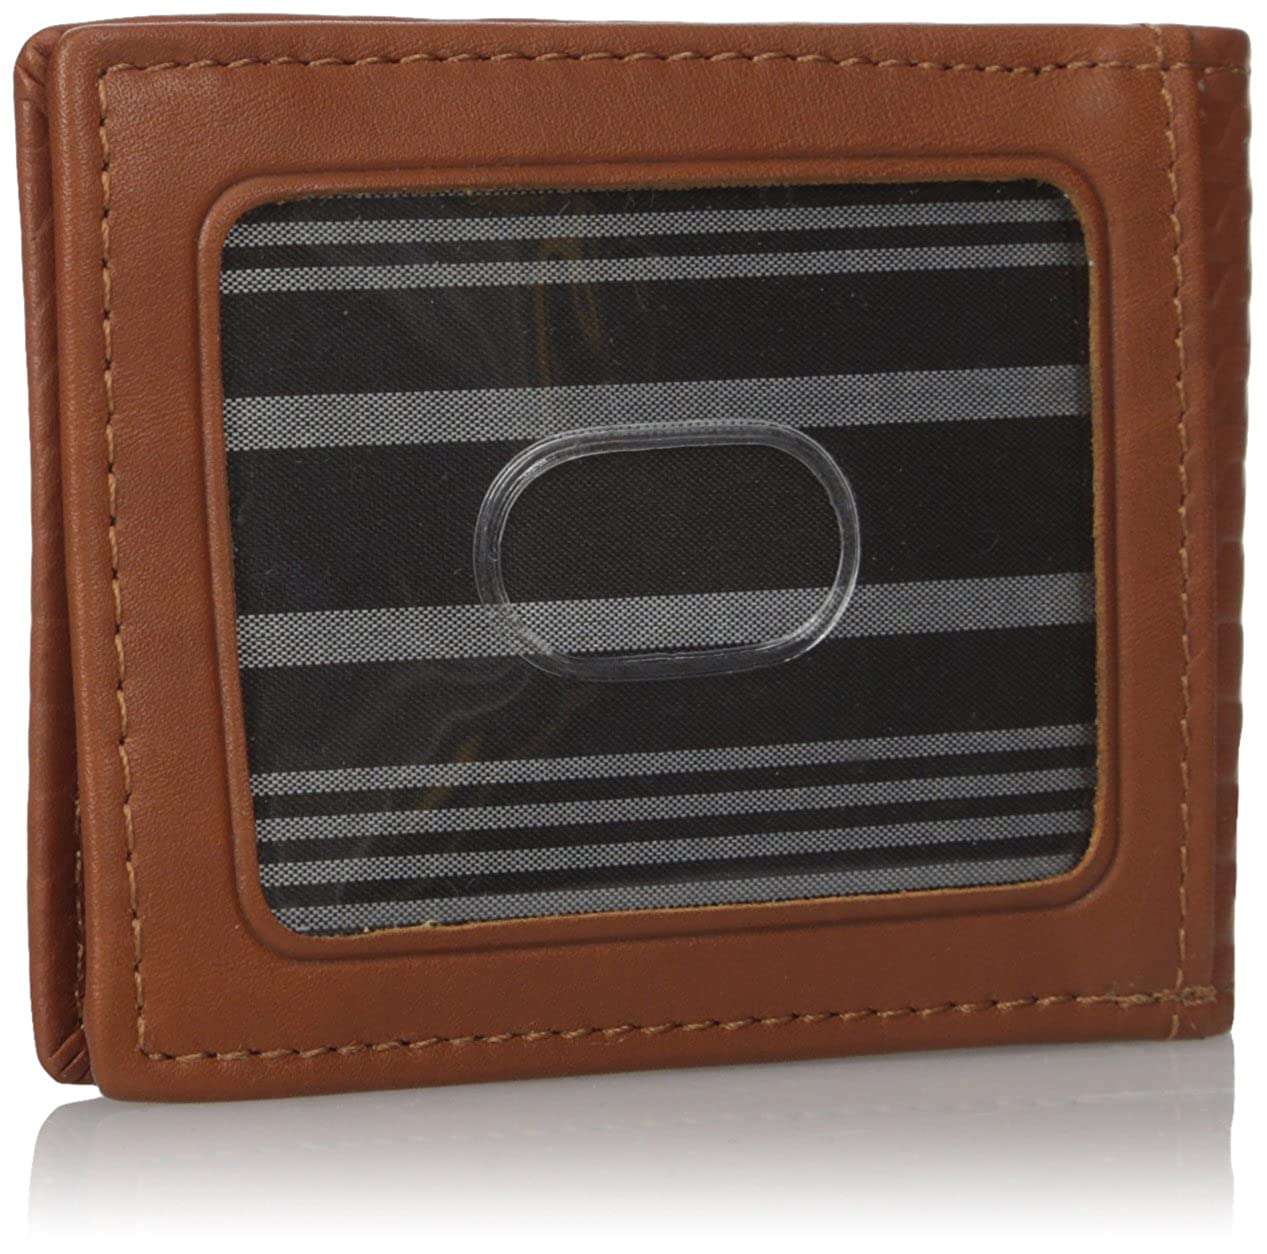 Buxton Mens Bellamy RFID Blocking Leather Front Pocket Slim Flip Wallet with Money Clip Brown One Size Buxton Men/'s Furnishings BR811.BR